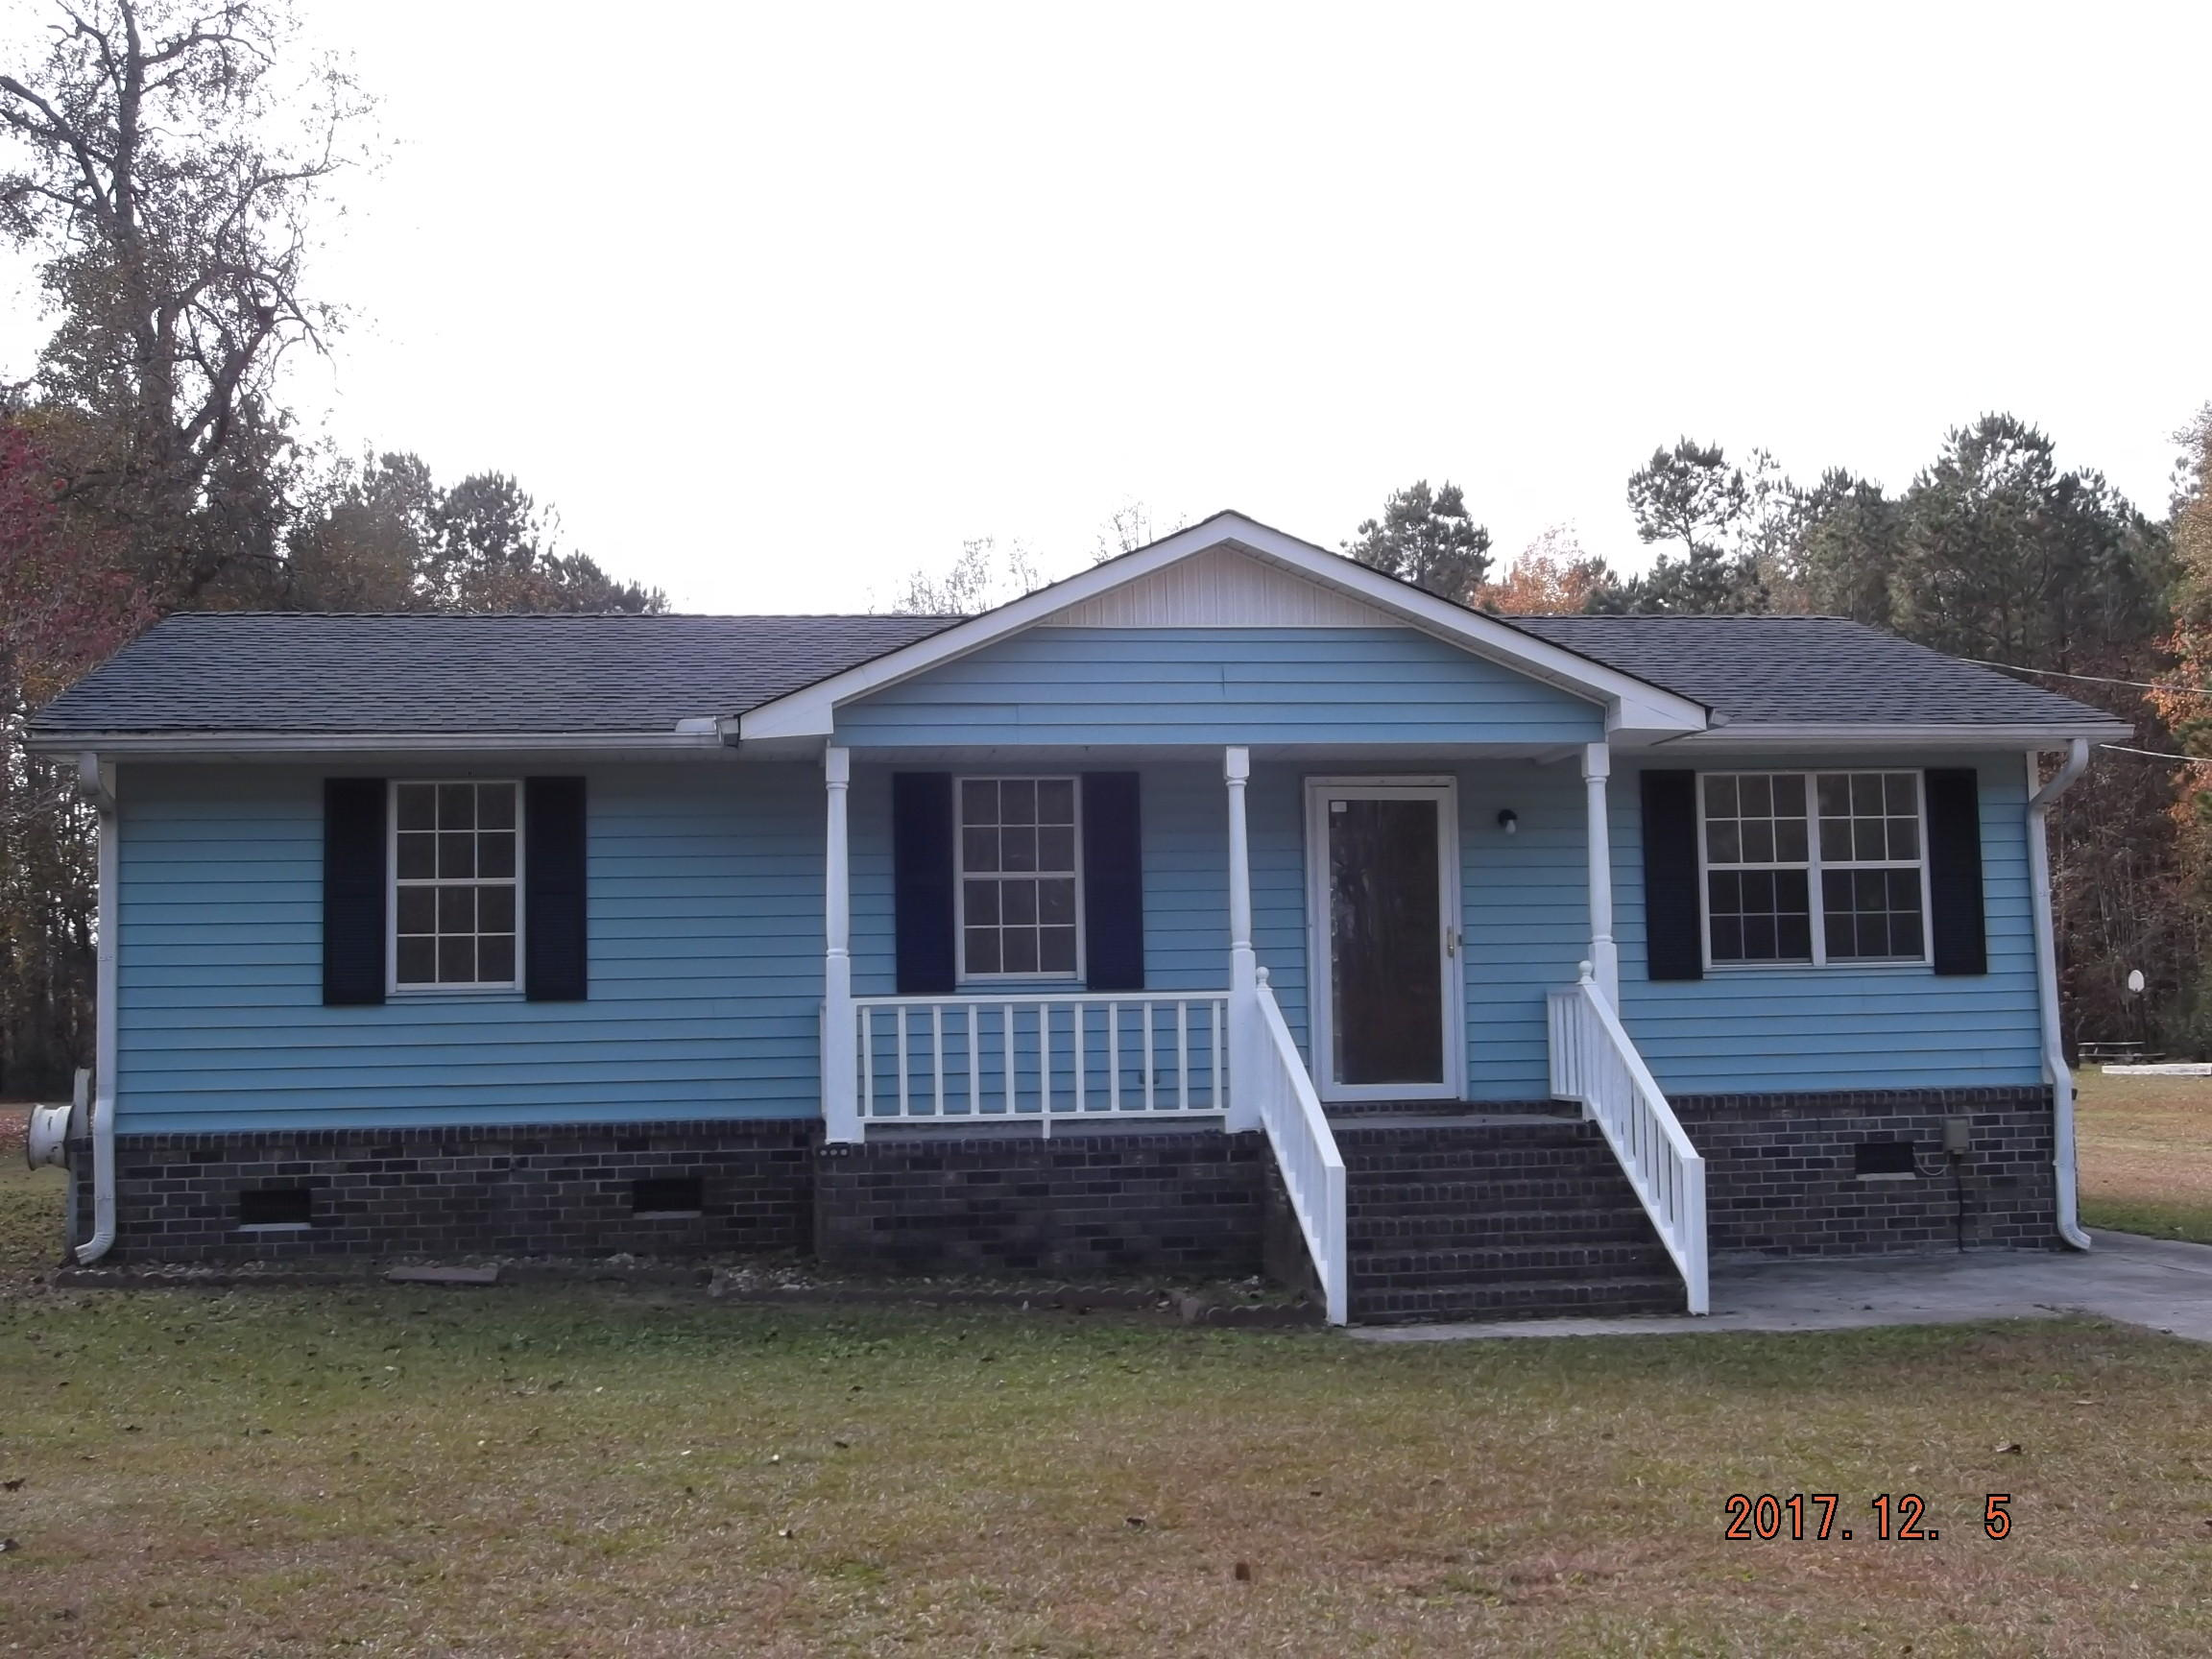 Photo of 4075 US-78, Dorchester, SC 29437